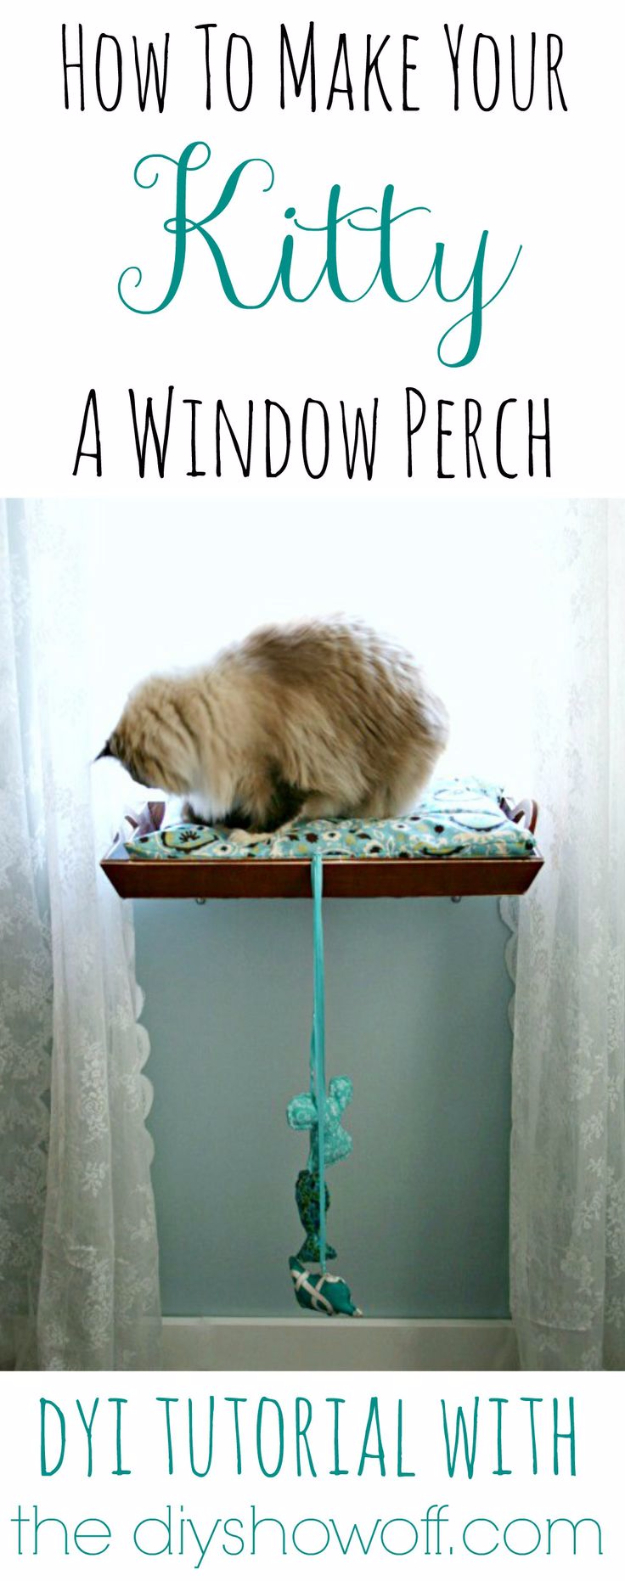 DIY Cat Hacks - Make A Window Perch For Your Kitty - Tips and Tricks Ideas for Cat Beds and Toys, Homemade Remedies for Fleas and Scratching - Do It Yourself Cat Treat Recips, Food and Gear for Your Pet - Cool Gifts for Cats http://diyjoy.com/diy-cat-hacks